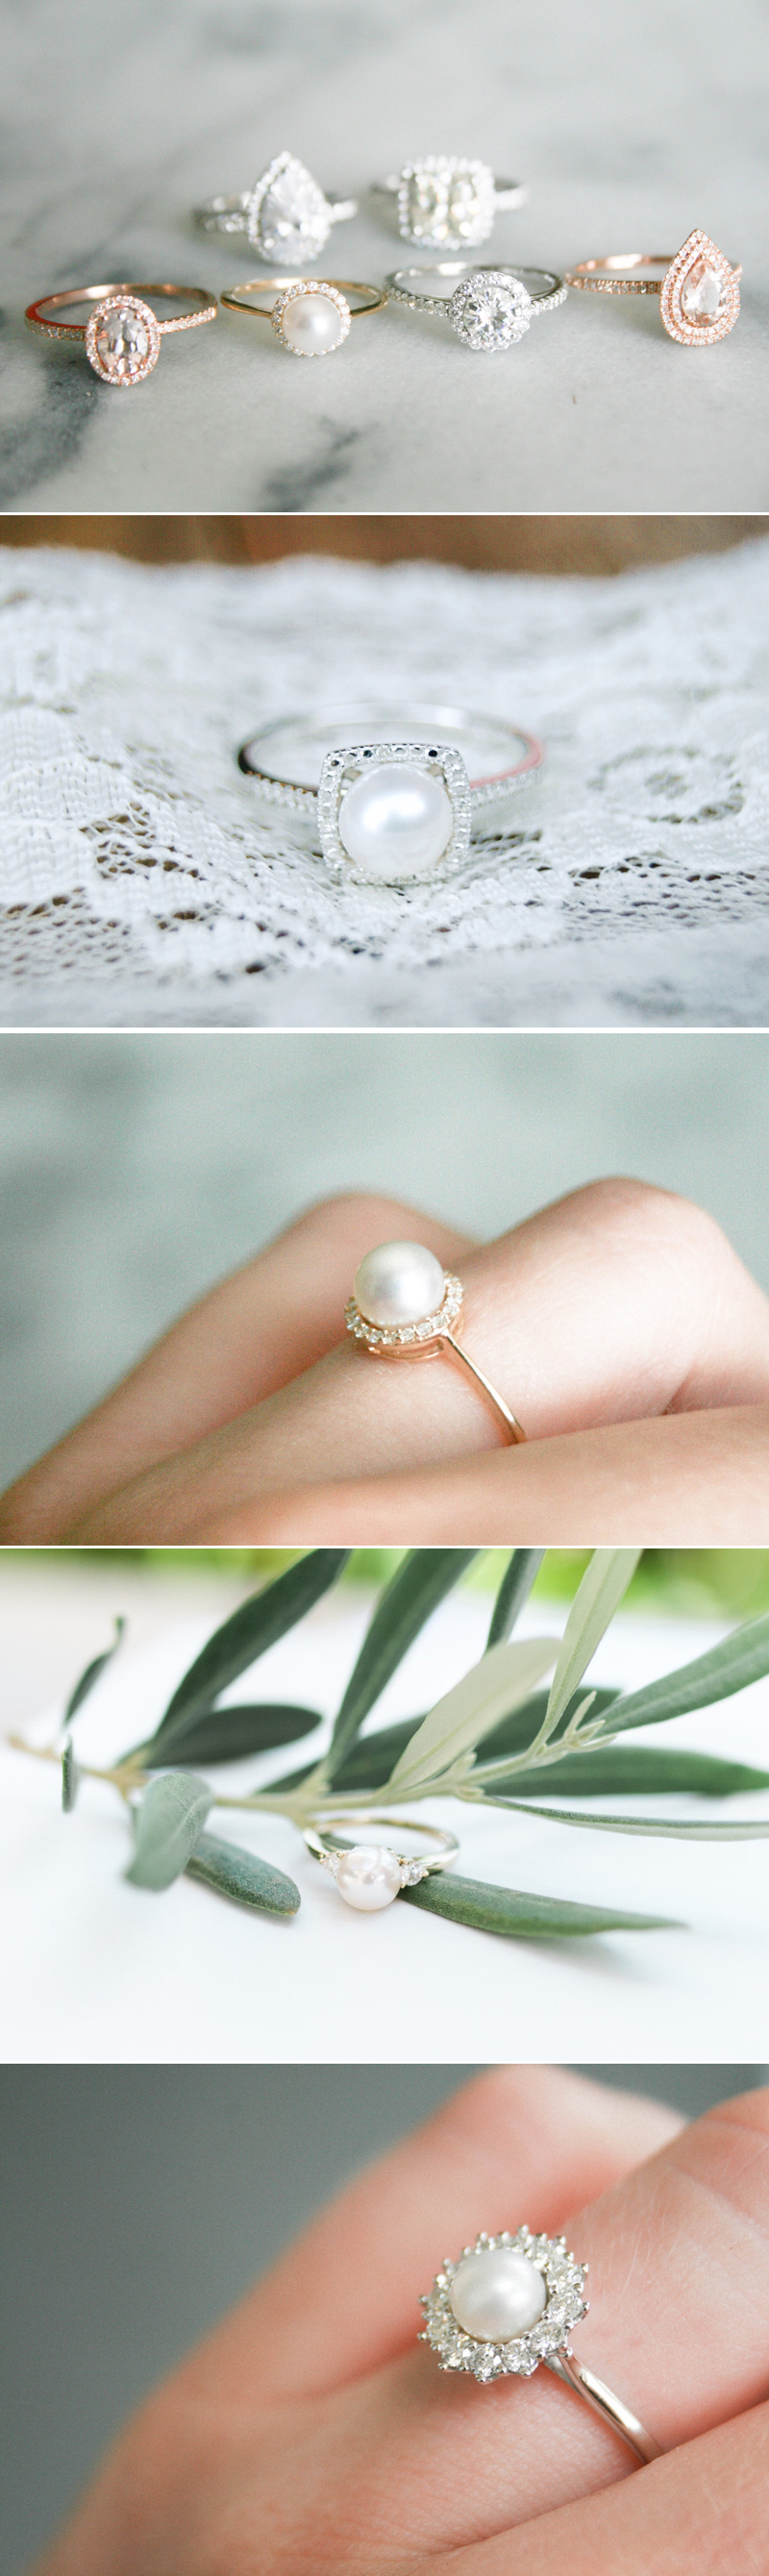 pearl-engagement-ring04-OliveAvenueJewelry